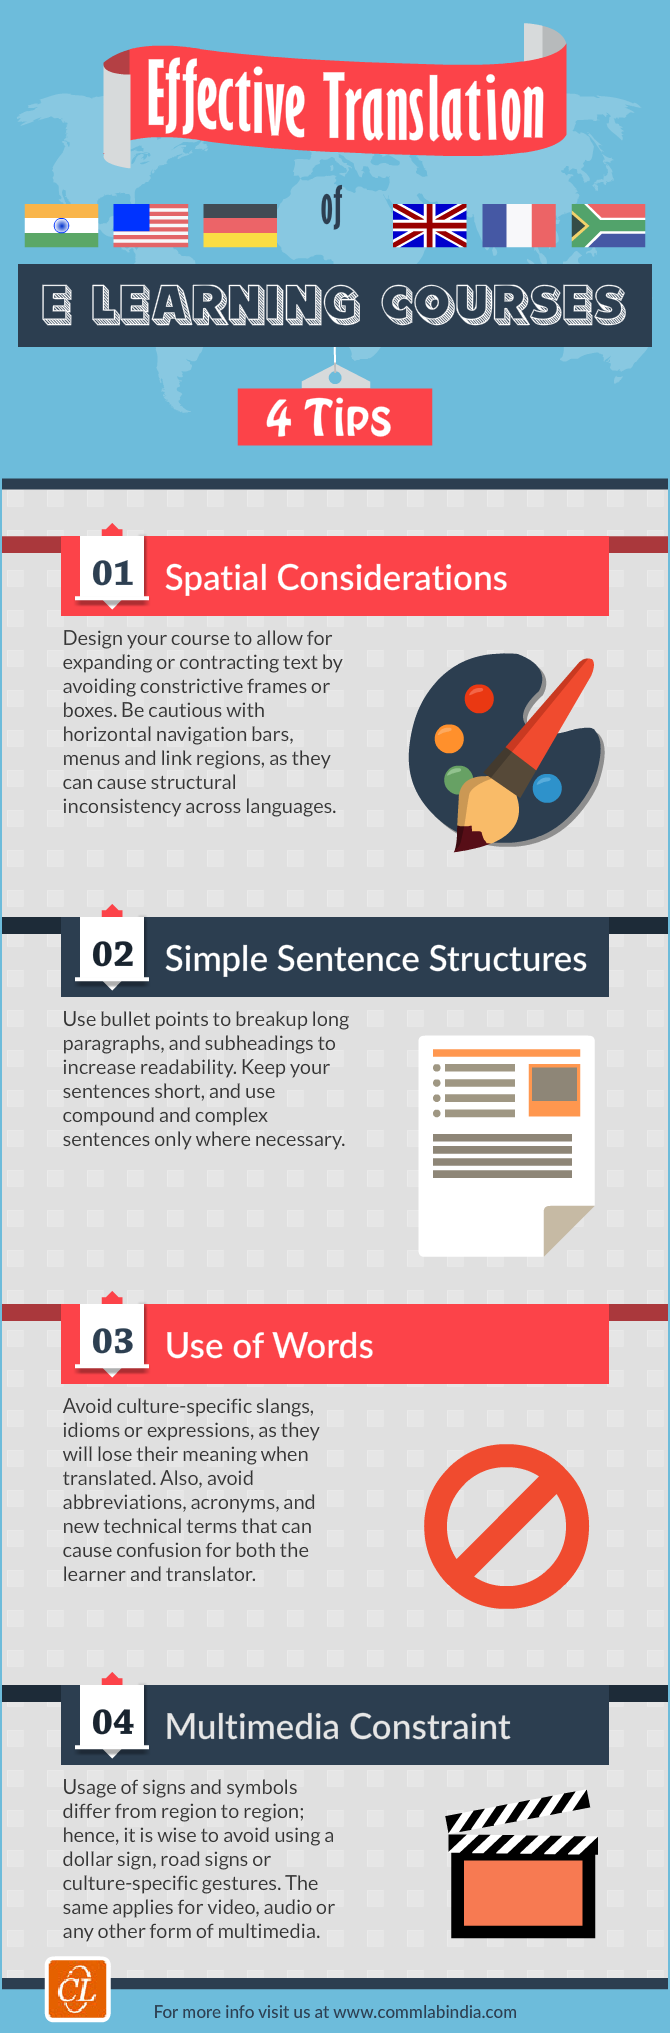 Effective Translation of E-learning Courses - 4 Tips [Infographic]